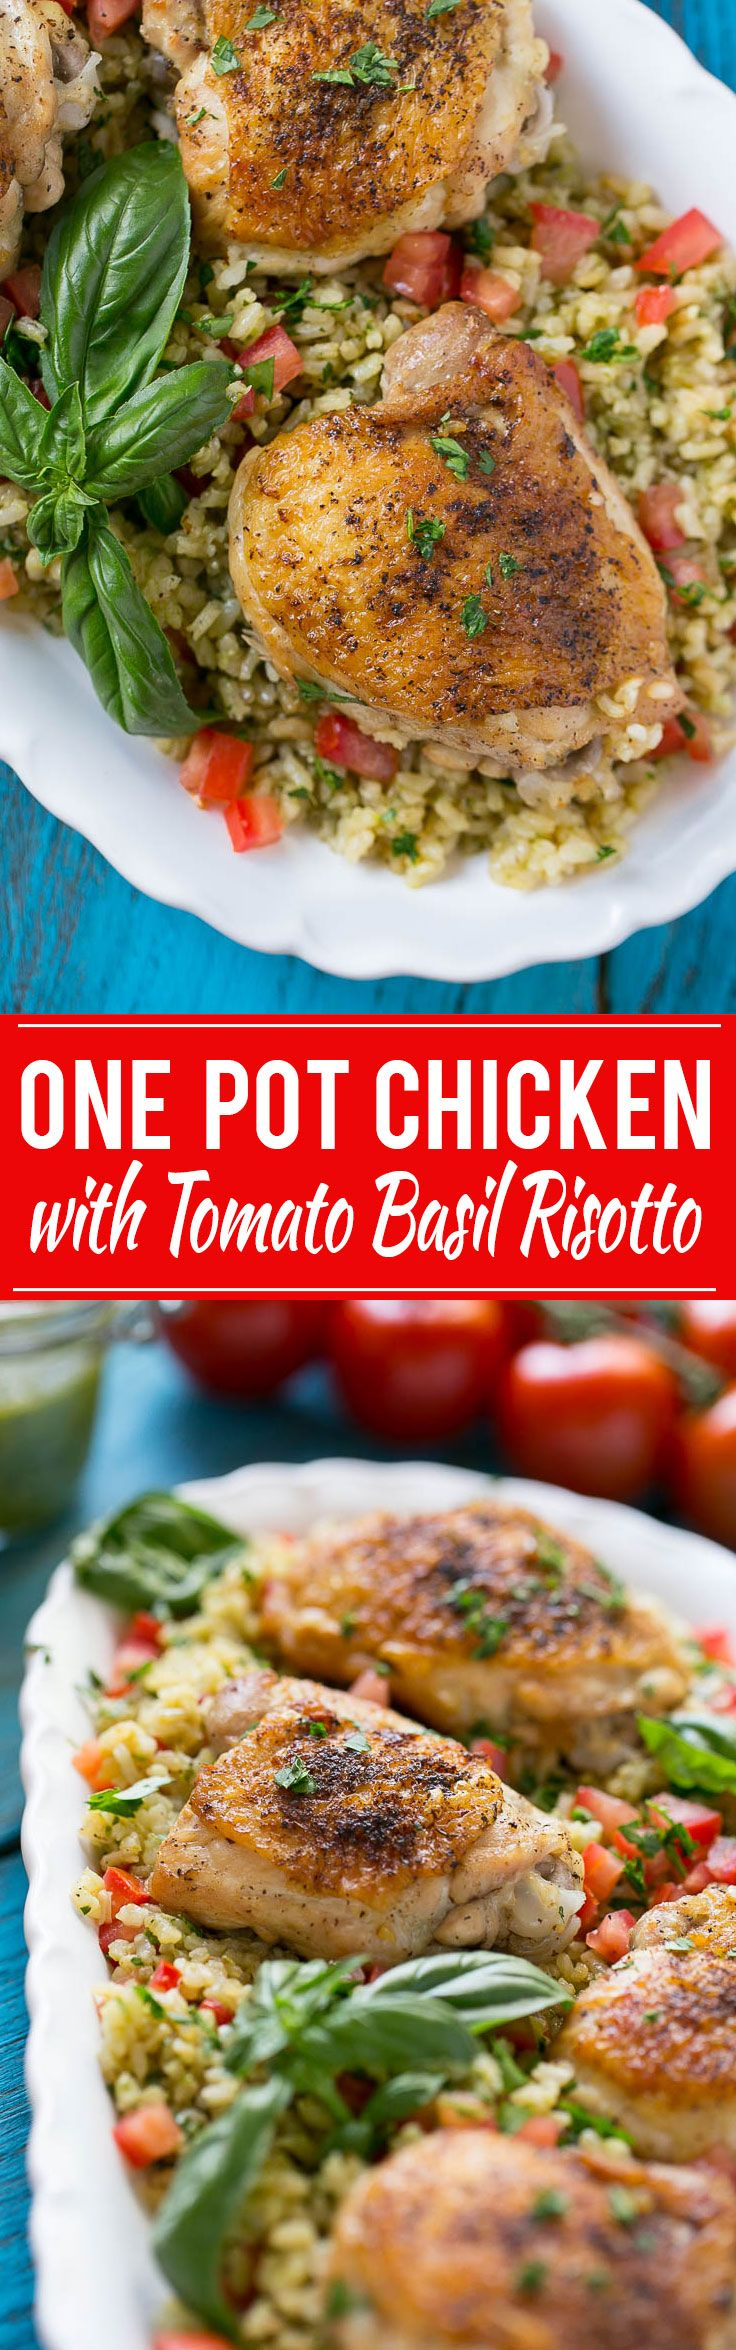 This one pot chicken with tomato basil risotto is the perfect weeknight meal - the whole thing bakes in the oven in a single dish!